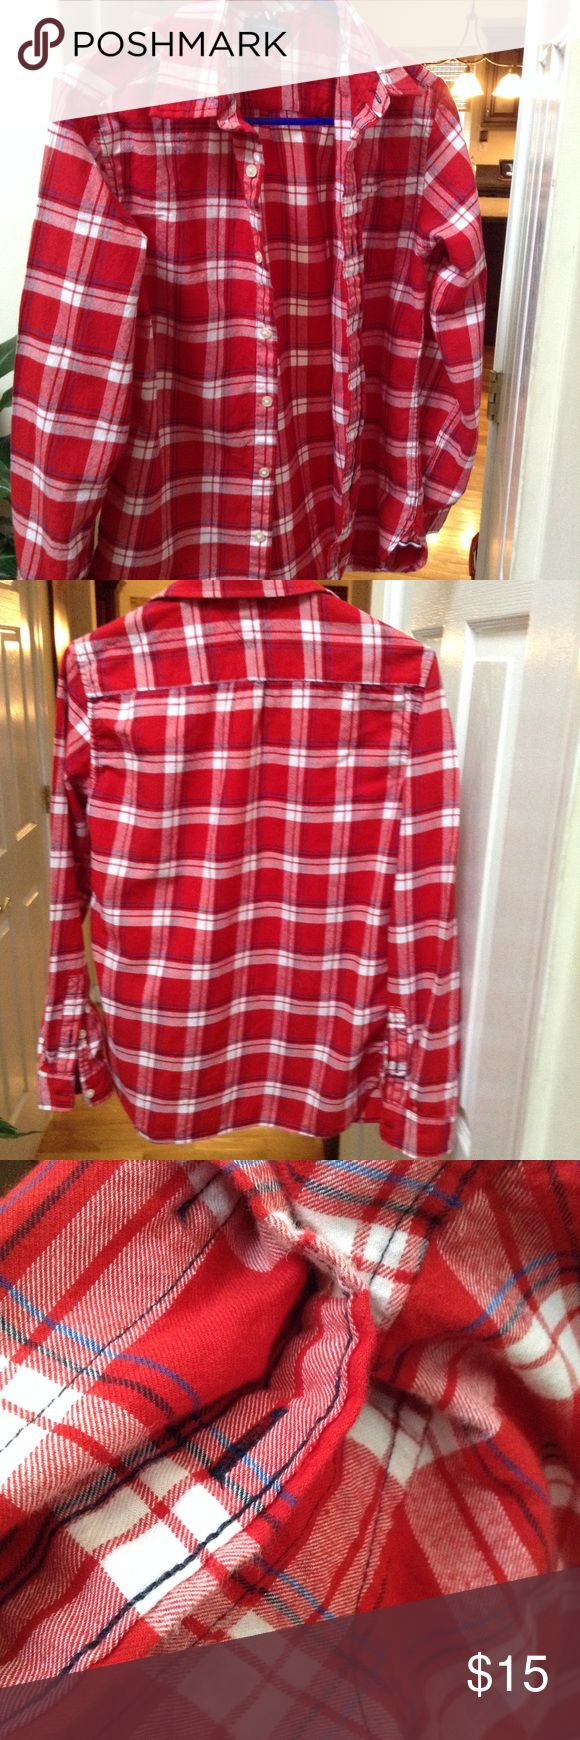 ✨Unisex Tommy Hilfiger Red Plaid Button Down✨ ✨Vibrant Red Plaid Shirt✨Long Sleeves✨💯Cotton✨Boys Size XL✨Or Unisex* Girls / Small Women's can pair w/ leggings, jeans.. Tommy Hilfiger Shirts & Tops Button Down Shirts